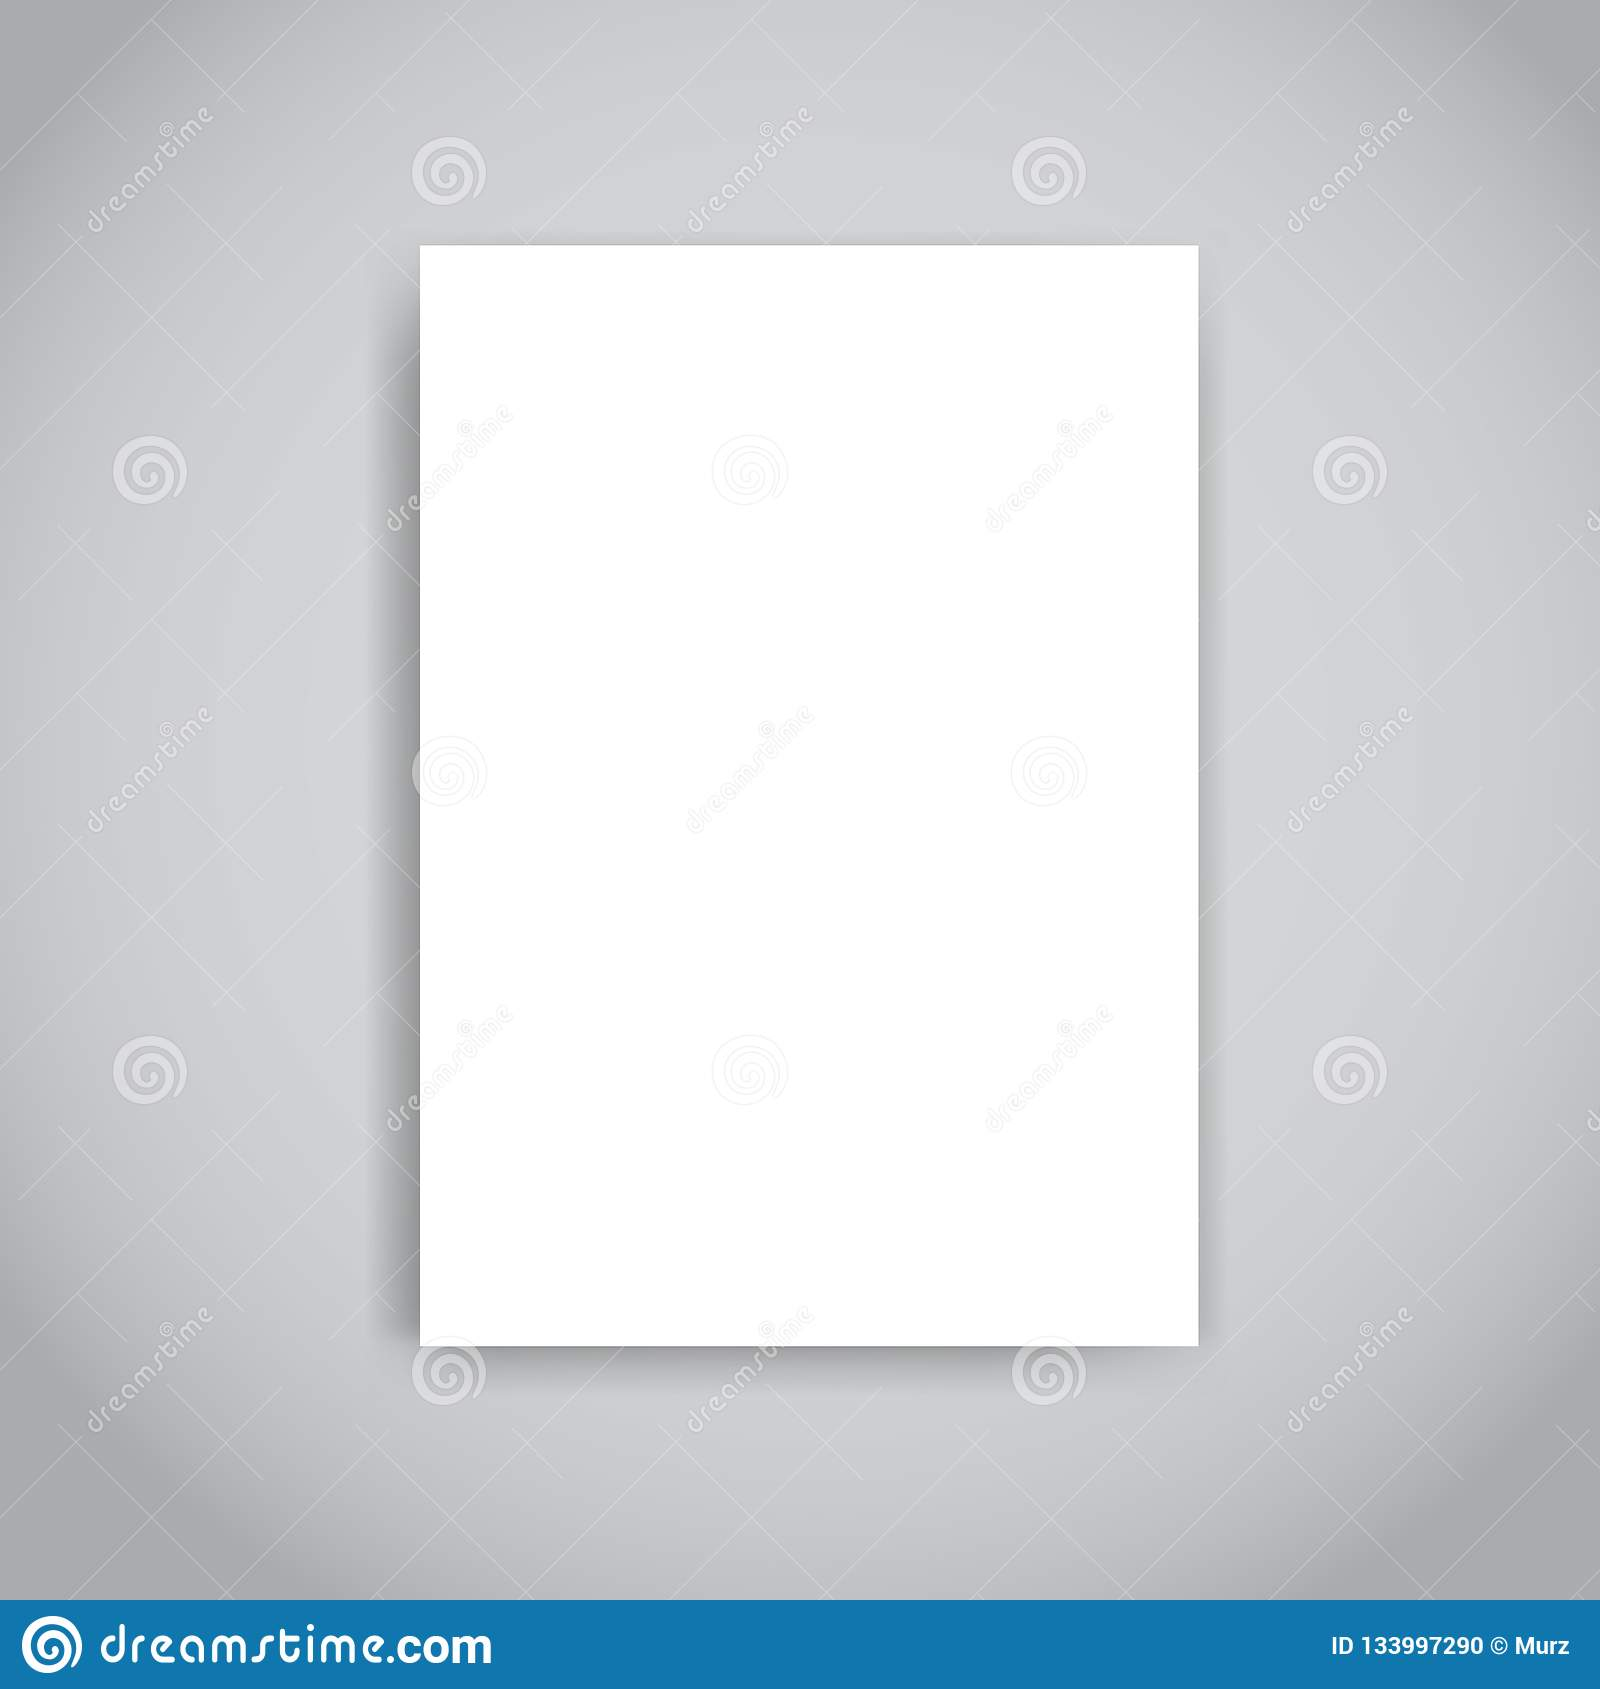 Blank Paper Brochure Or Flyer Design Template With Soft